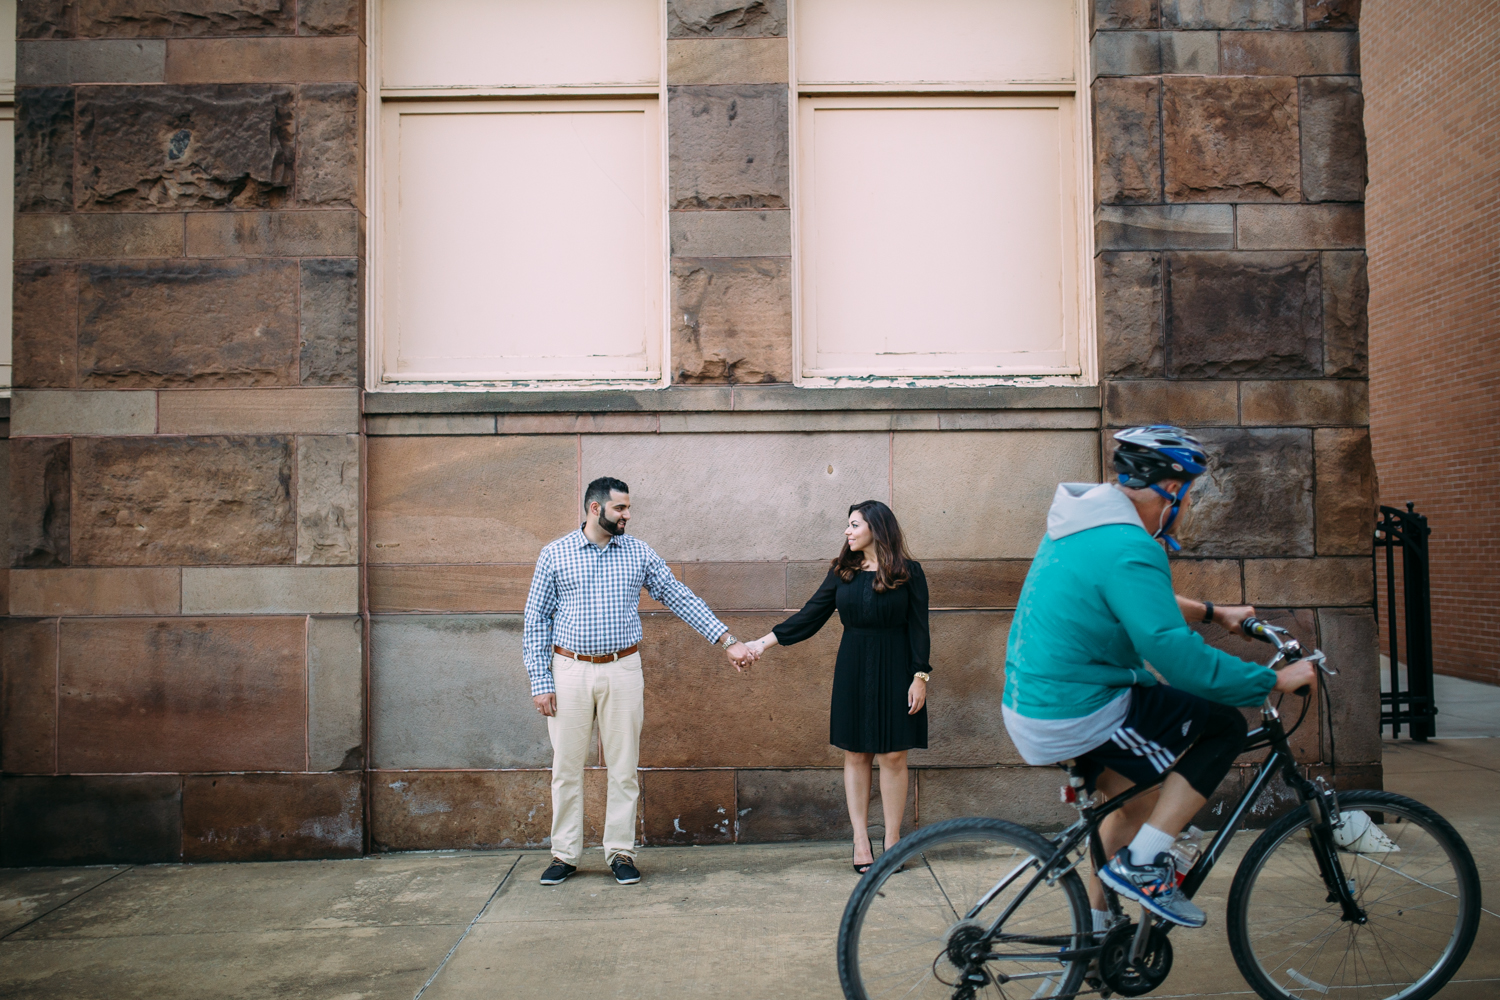 Ashley-reed-photography-pittsburgh-engagement-engagementphotography-engagementphotographer-stationsquare-statio-square-pittsburghengagementphotography-22.jpg